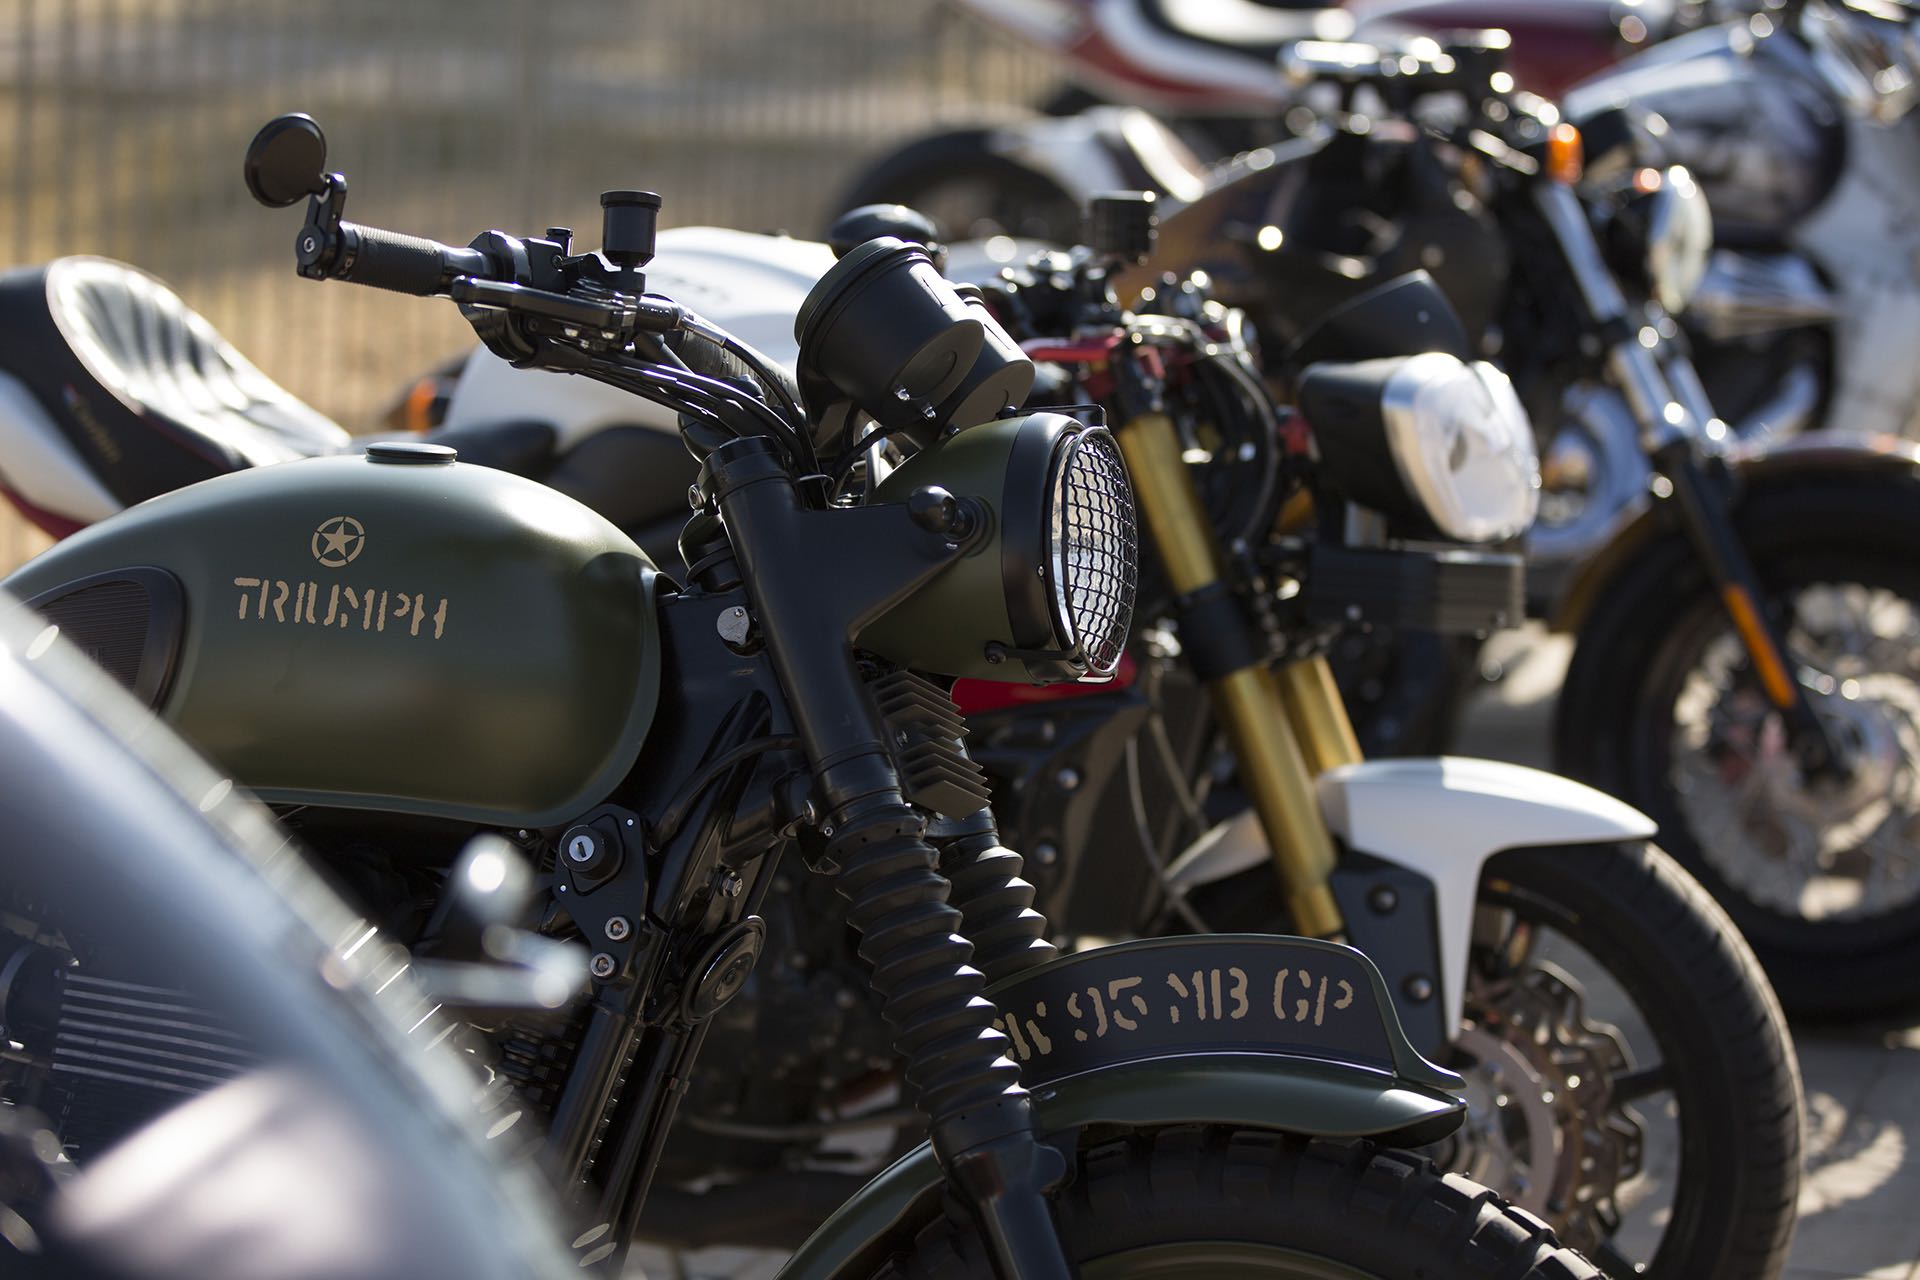 Test ride multiple motorcycle brand at the 2017 SA Bike Festival